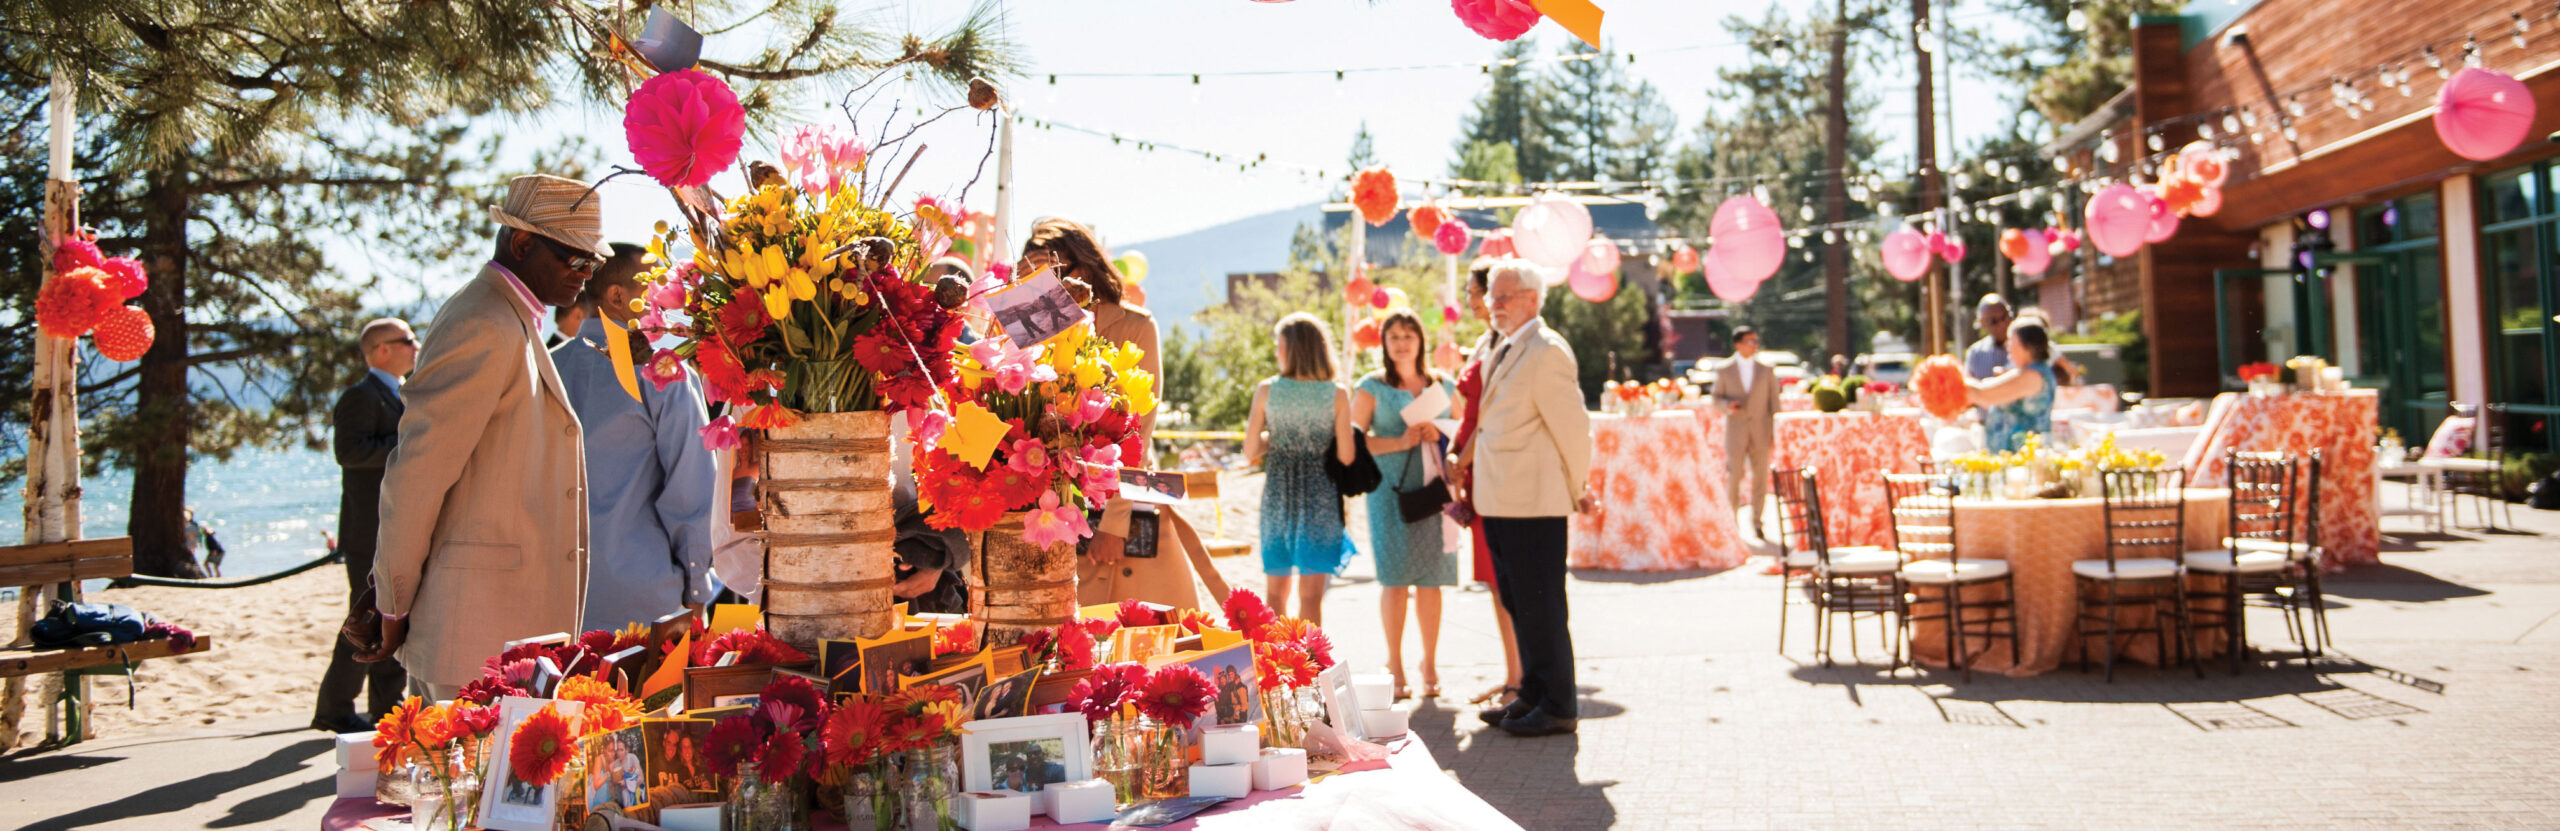 Weddings at North Tahoe Event Center